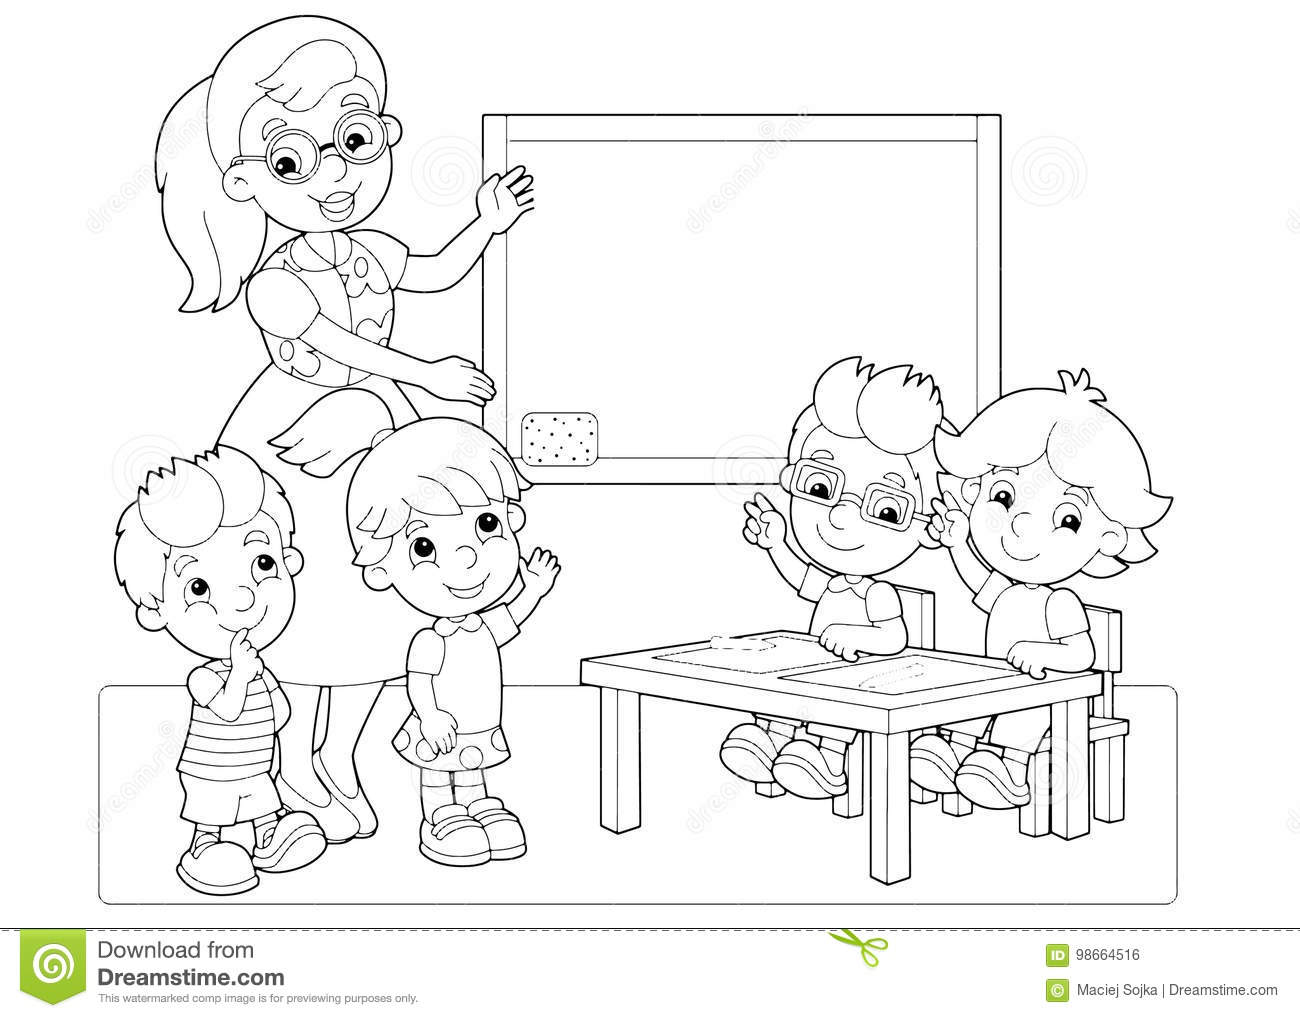 Free Teacher Worksheets - Download now and use today |My Classroom Coloring Pages